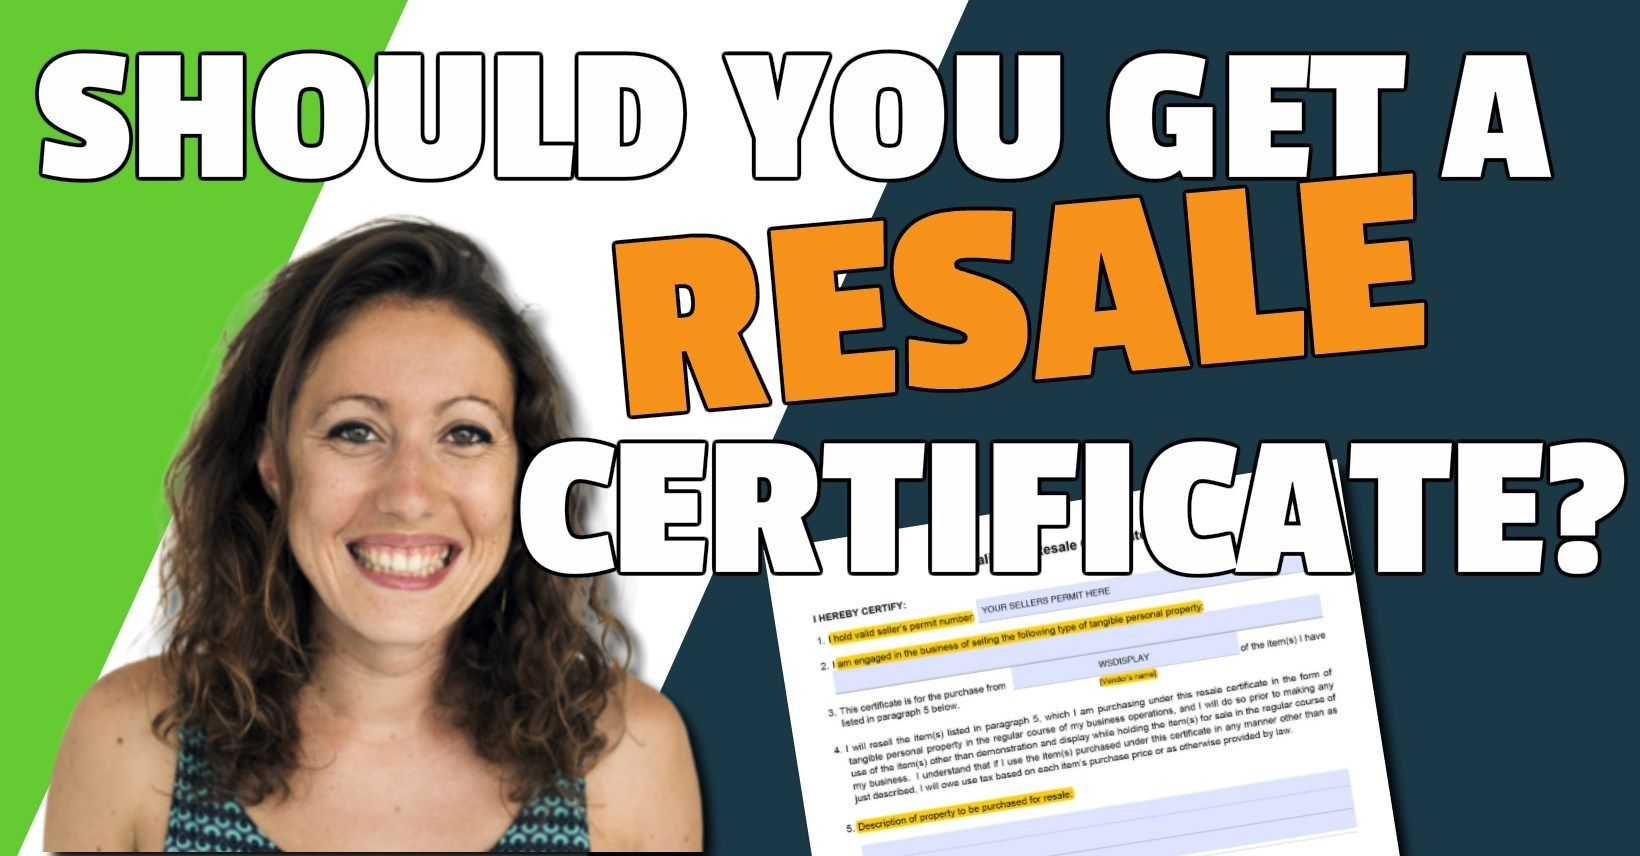 California Resale Certificate: Complete Guide for Amazon Sellers